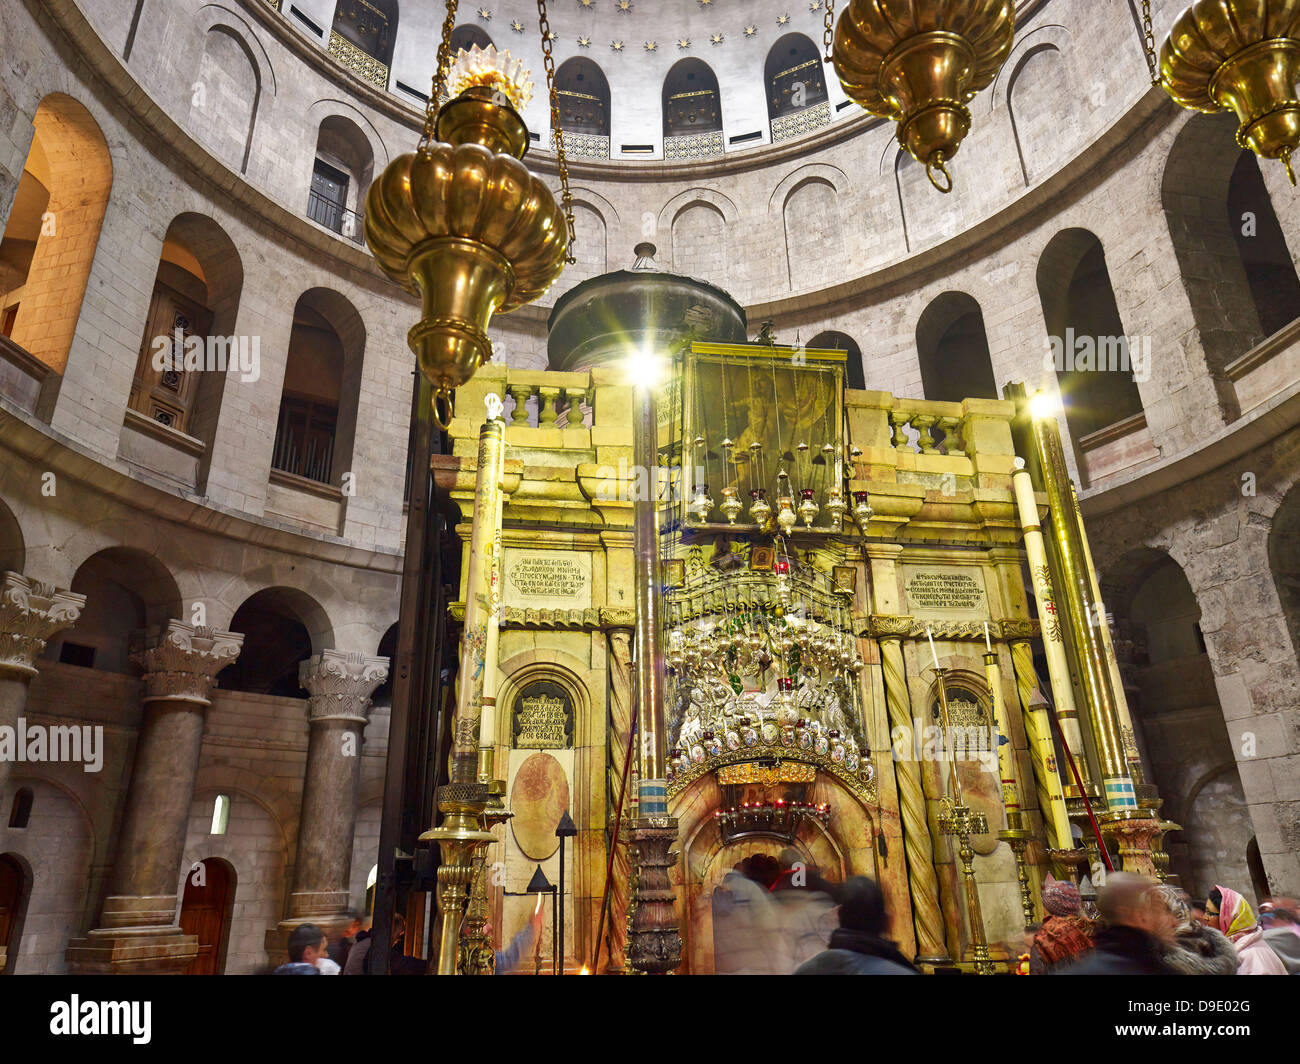 Grave of Christ in the Church of Holy Sepulchre in Jerusalem, Israel - Stock Image